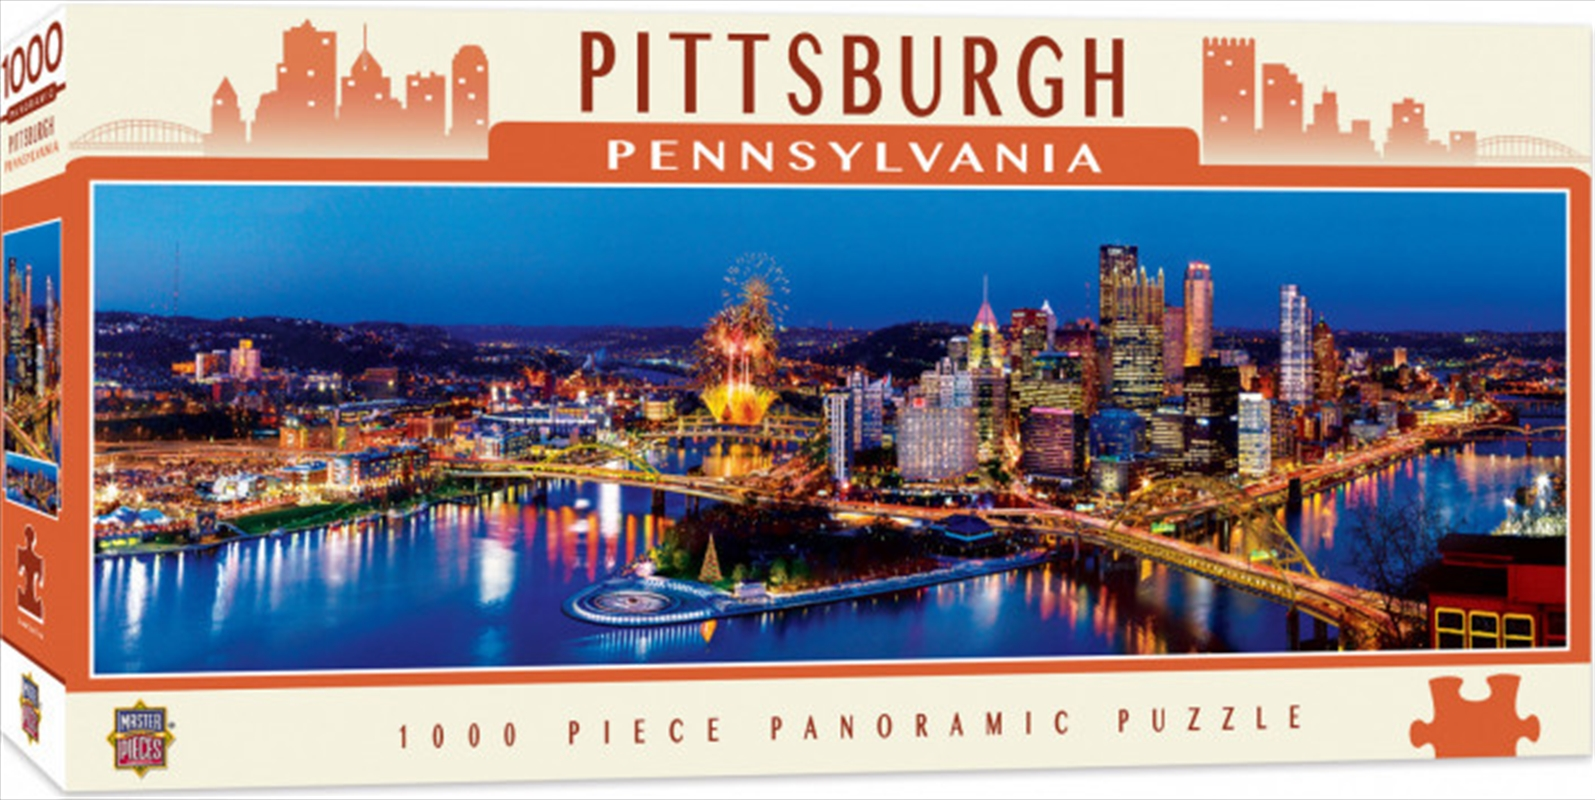 City Panoramic Pittsburgh 1000 Piece Puzzle | Merchandise